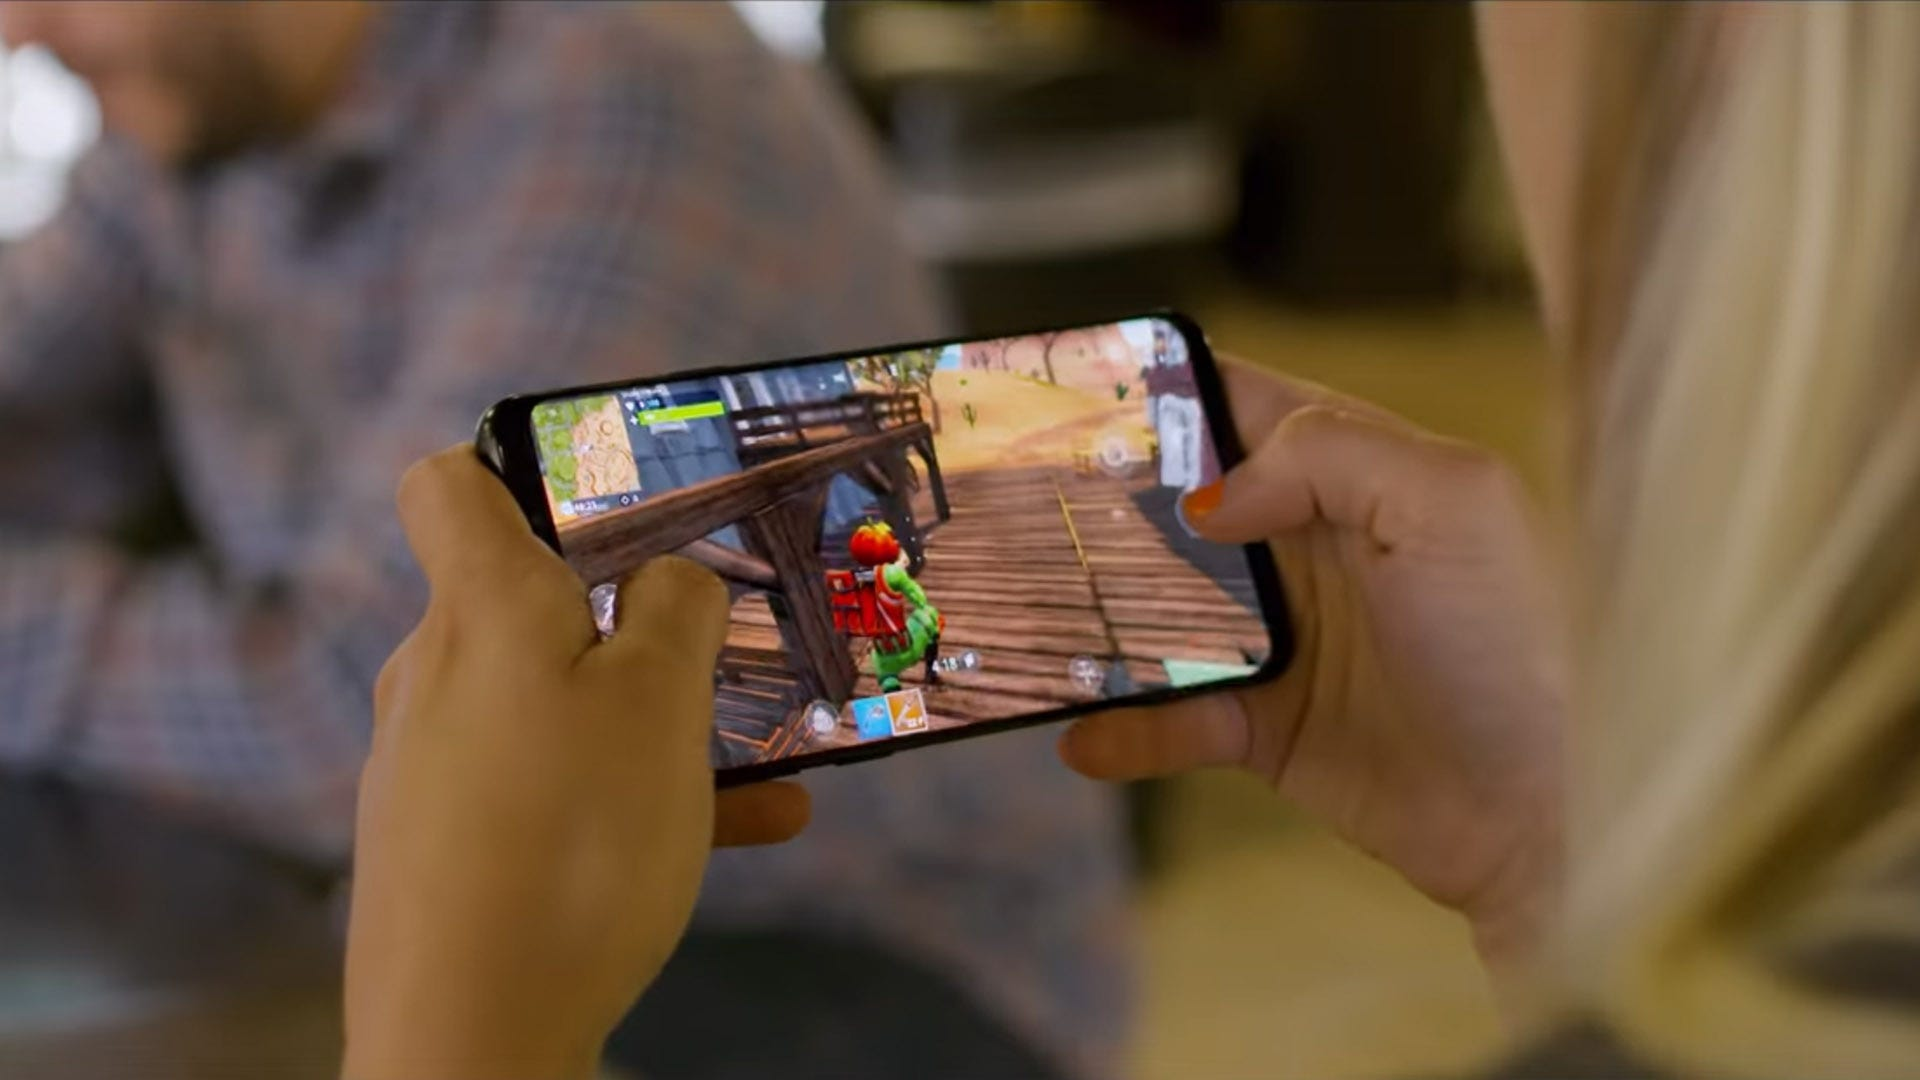 Fortnite being played on an Android phone